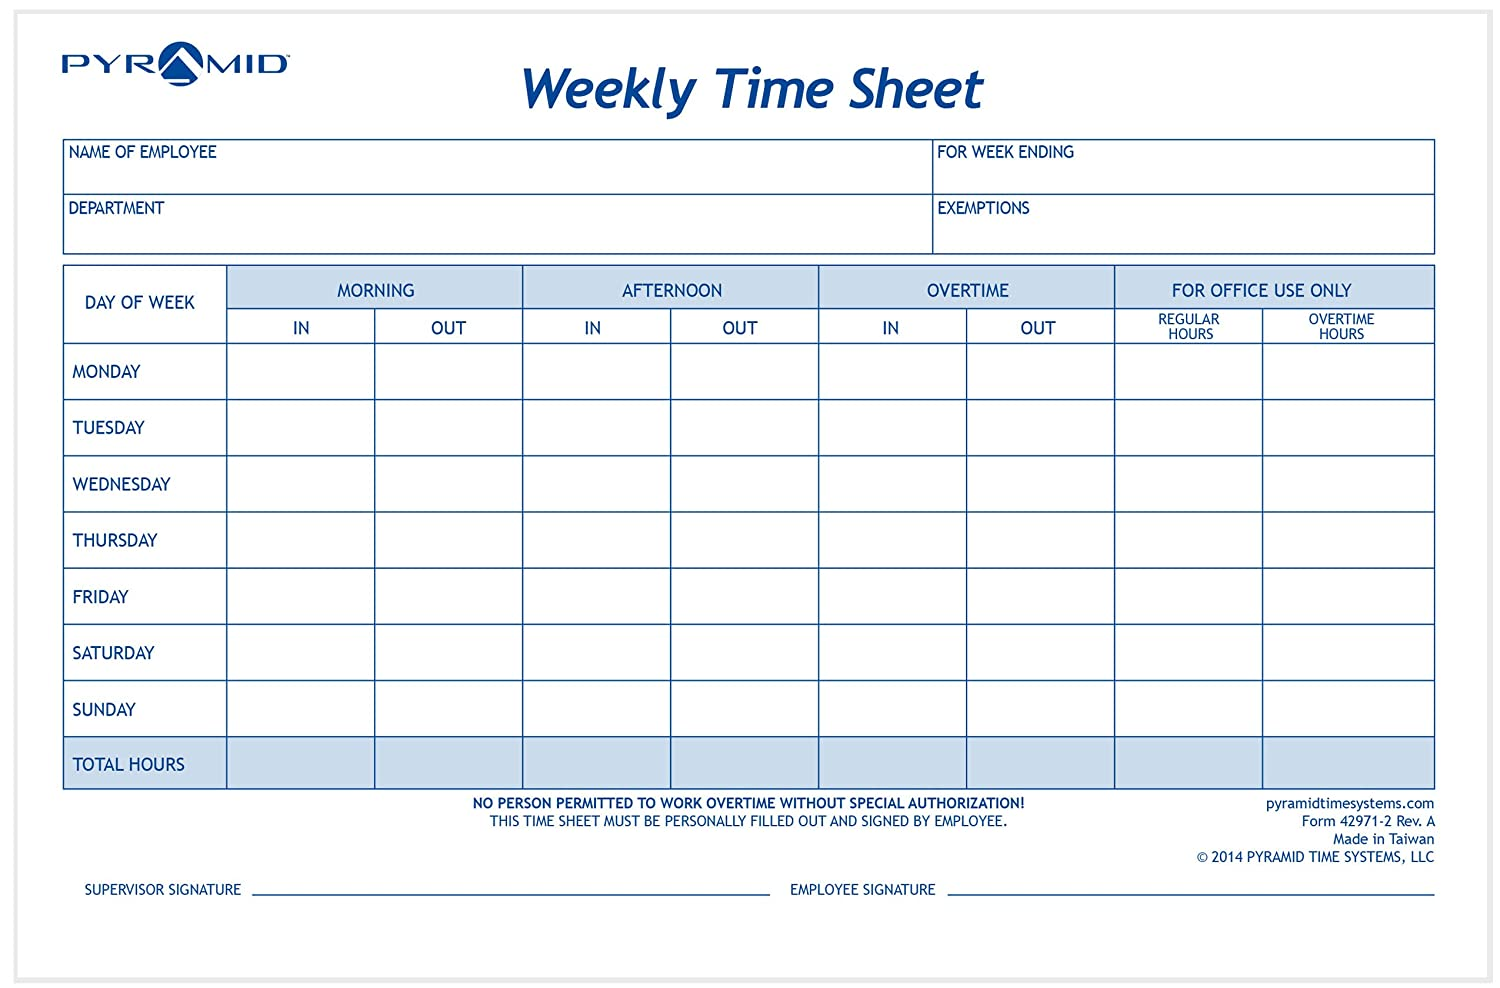 Pyramid Weekly Time Sheet Pads, 2/Pk (42971-2)